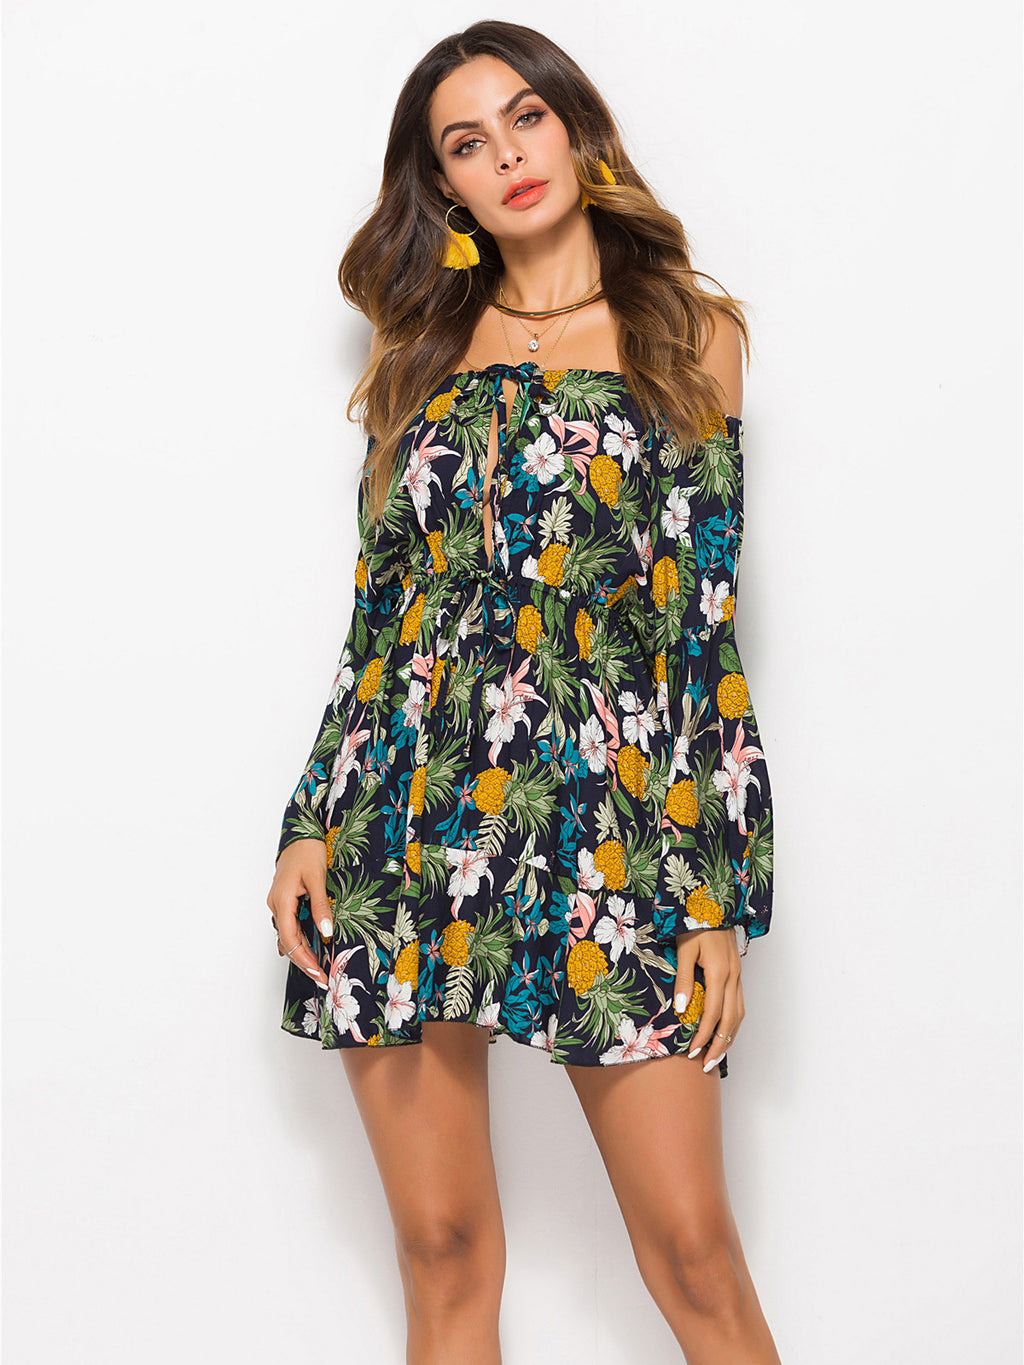 Off-the-shoulder mini dress featured in a fun pineapple print and an oversized fit